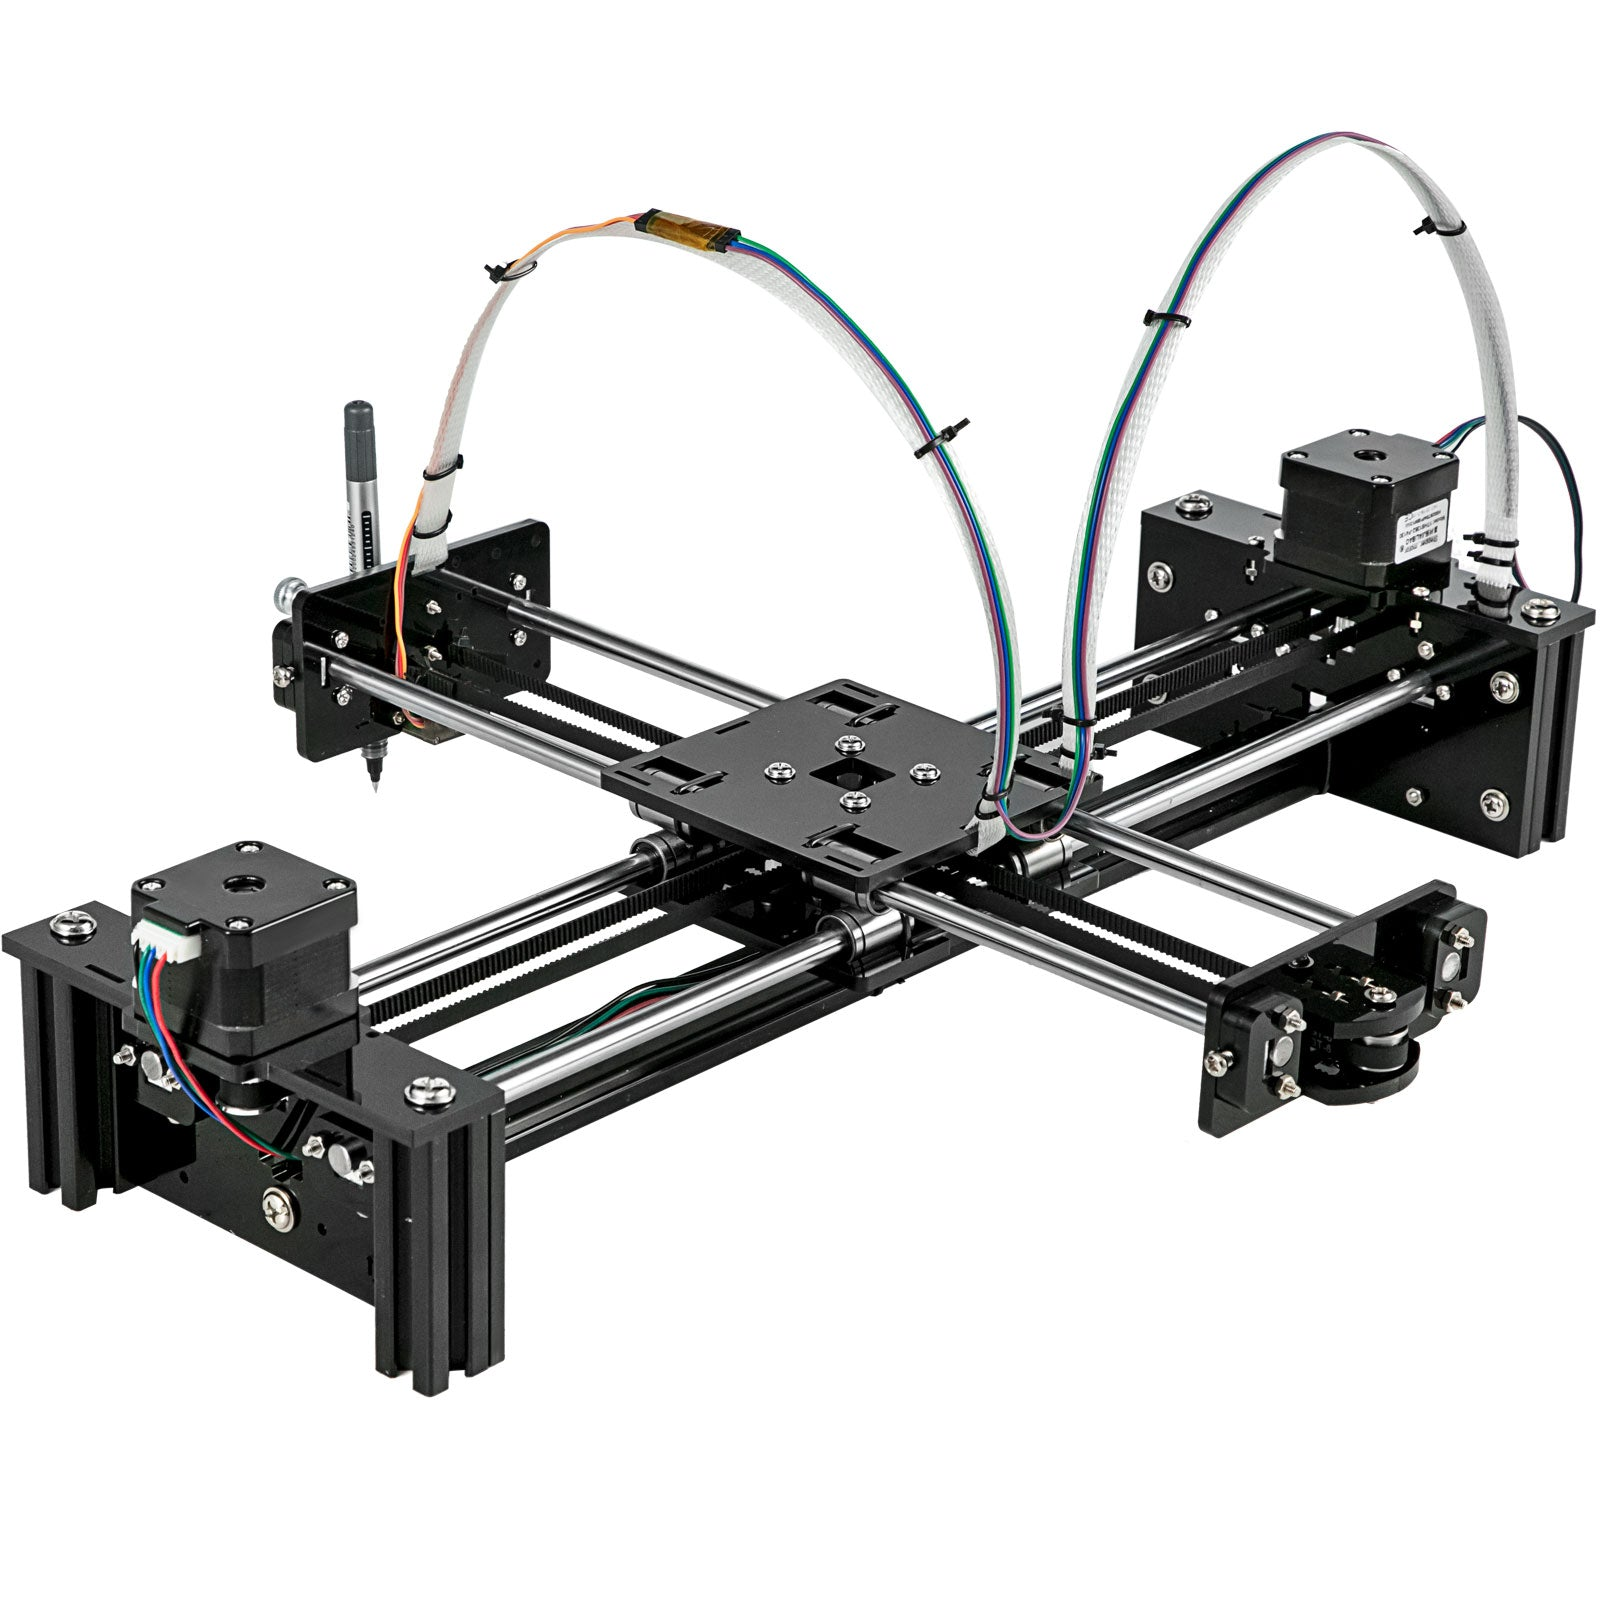 Xy Plotter Kit Diy Xy Plotter 2 Axis Xy Plotter Robot Kit Engraving Machine